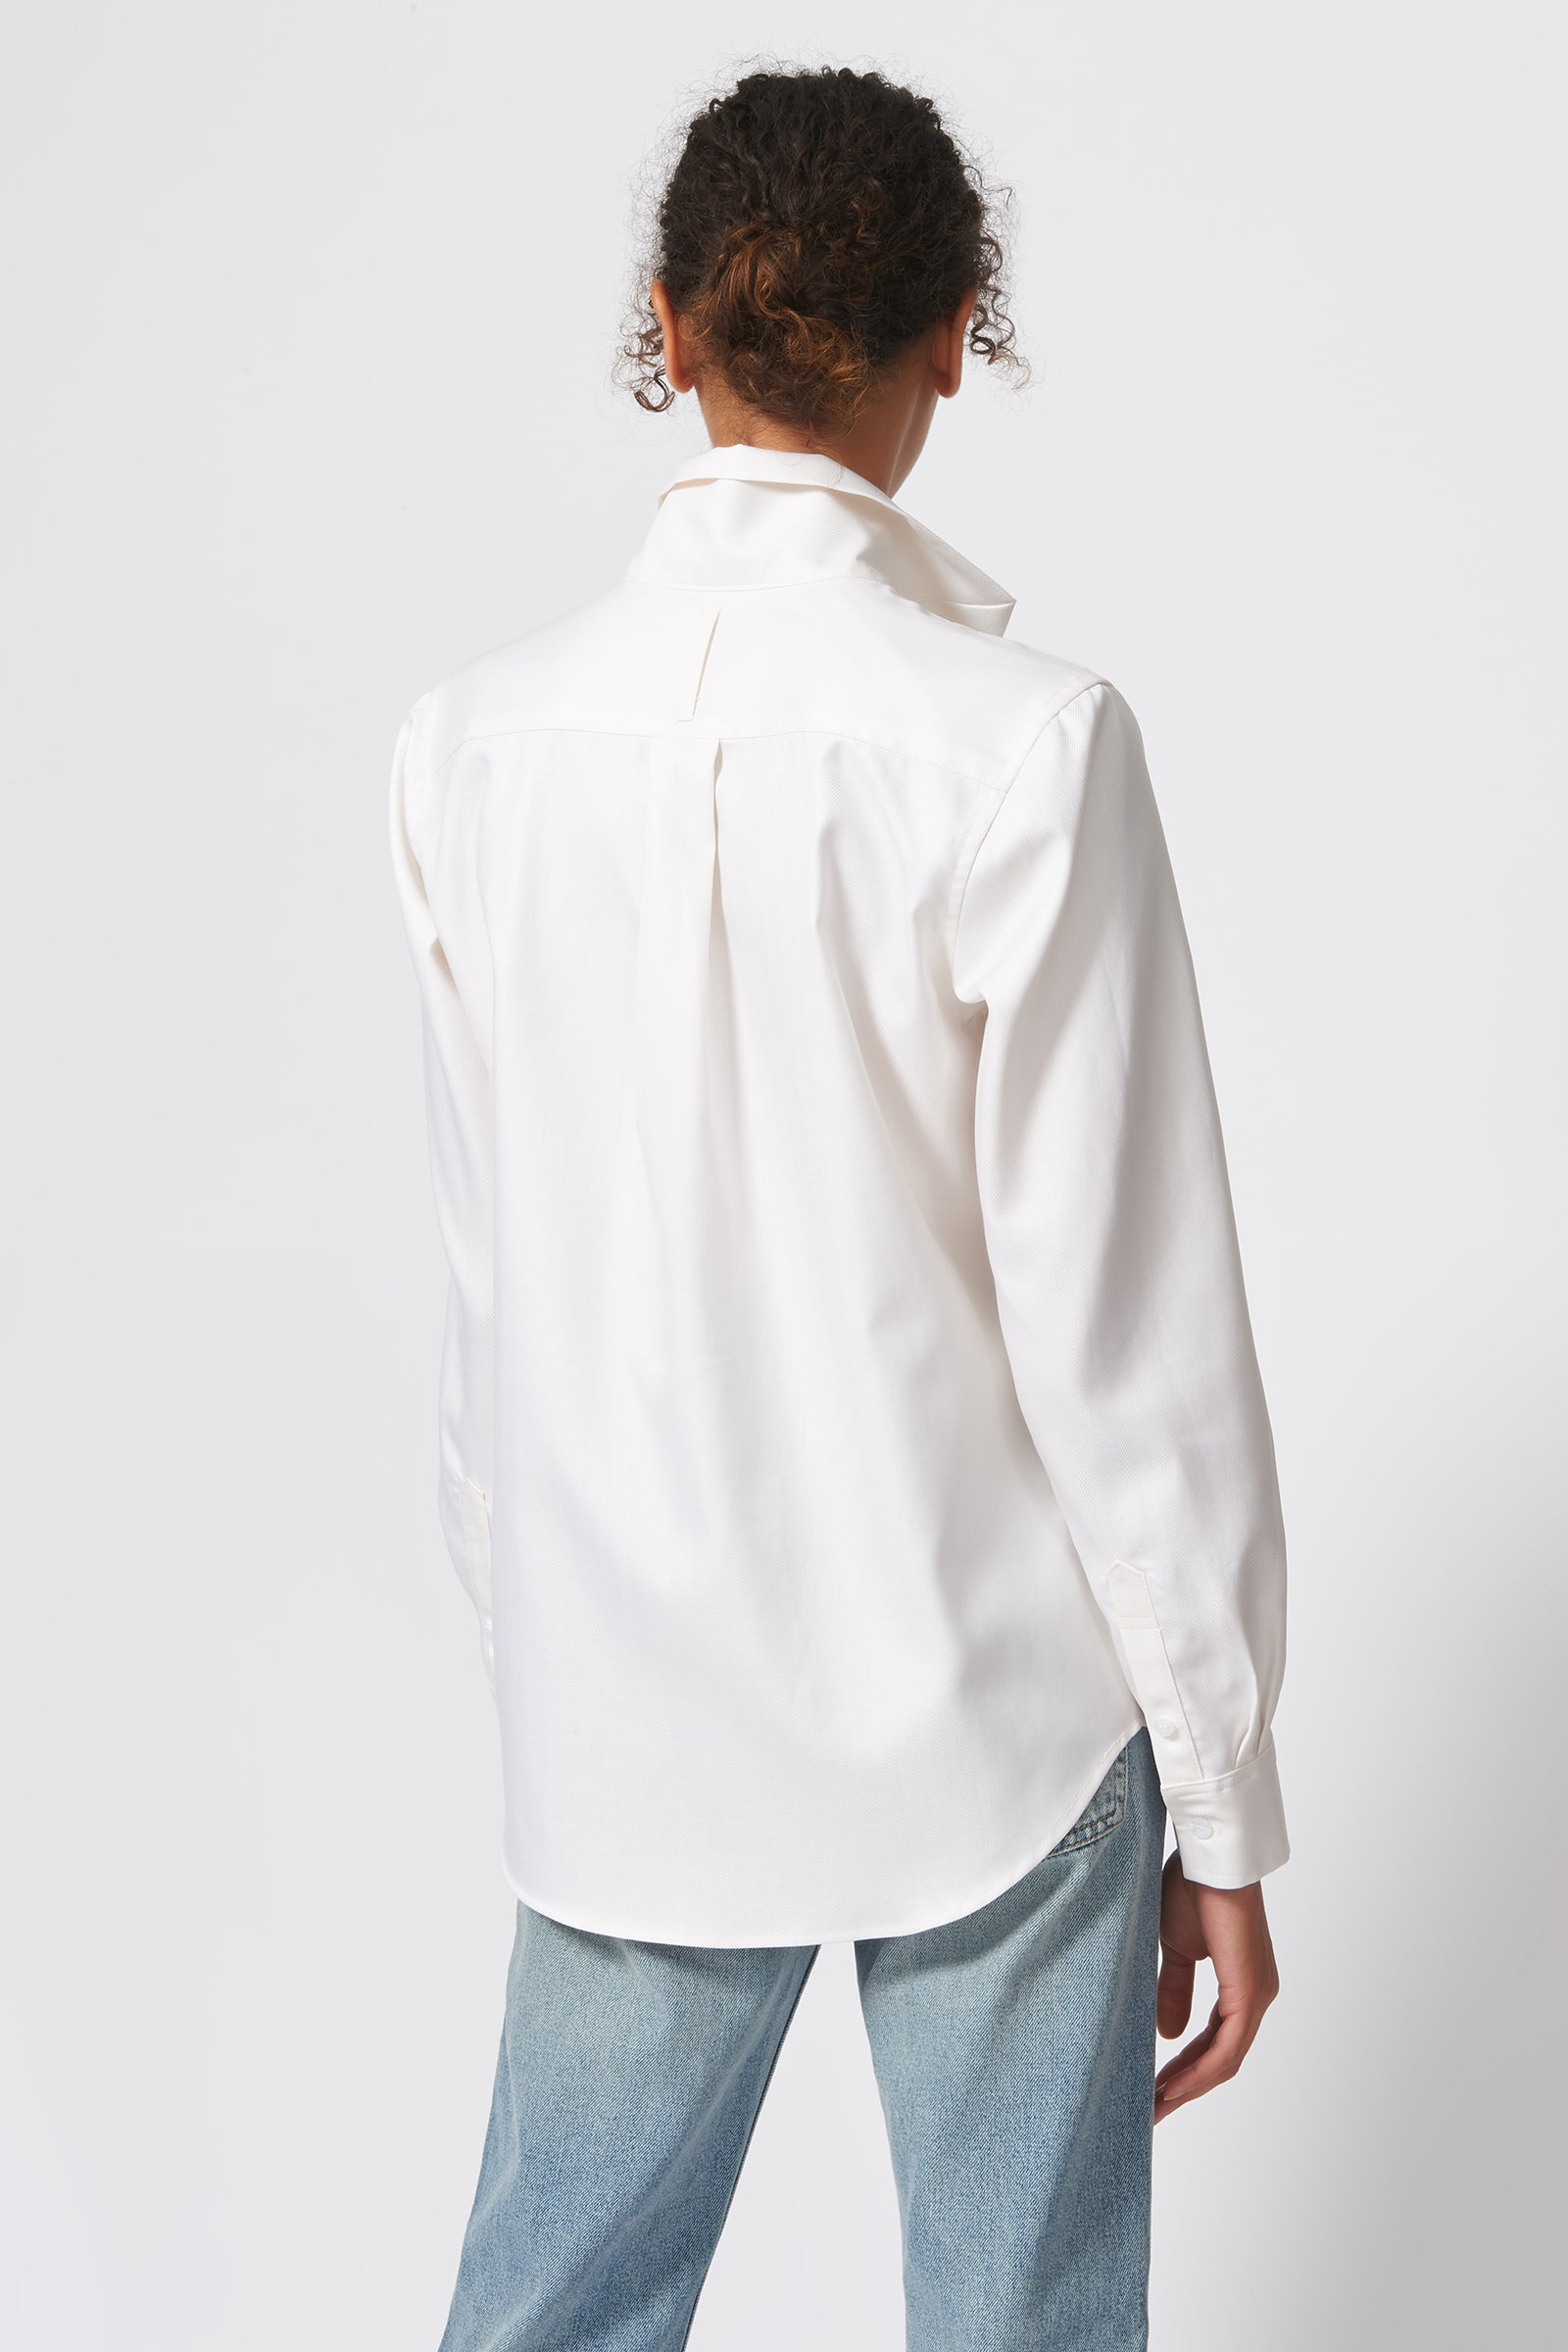 Kal Rieman Ginna Box Pleat Shirt in Ivory Fine Herringbone on Model Back View